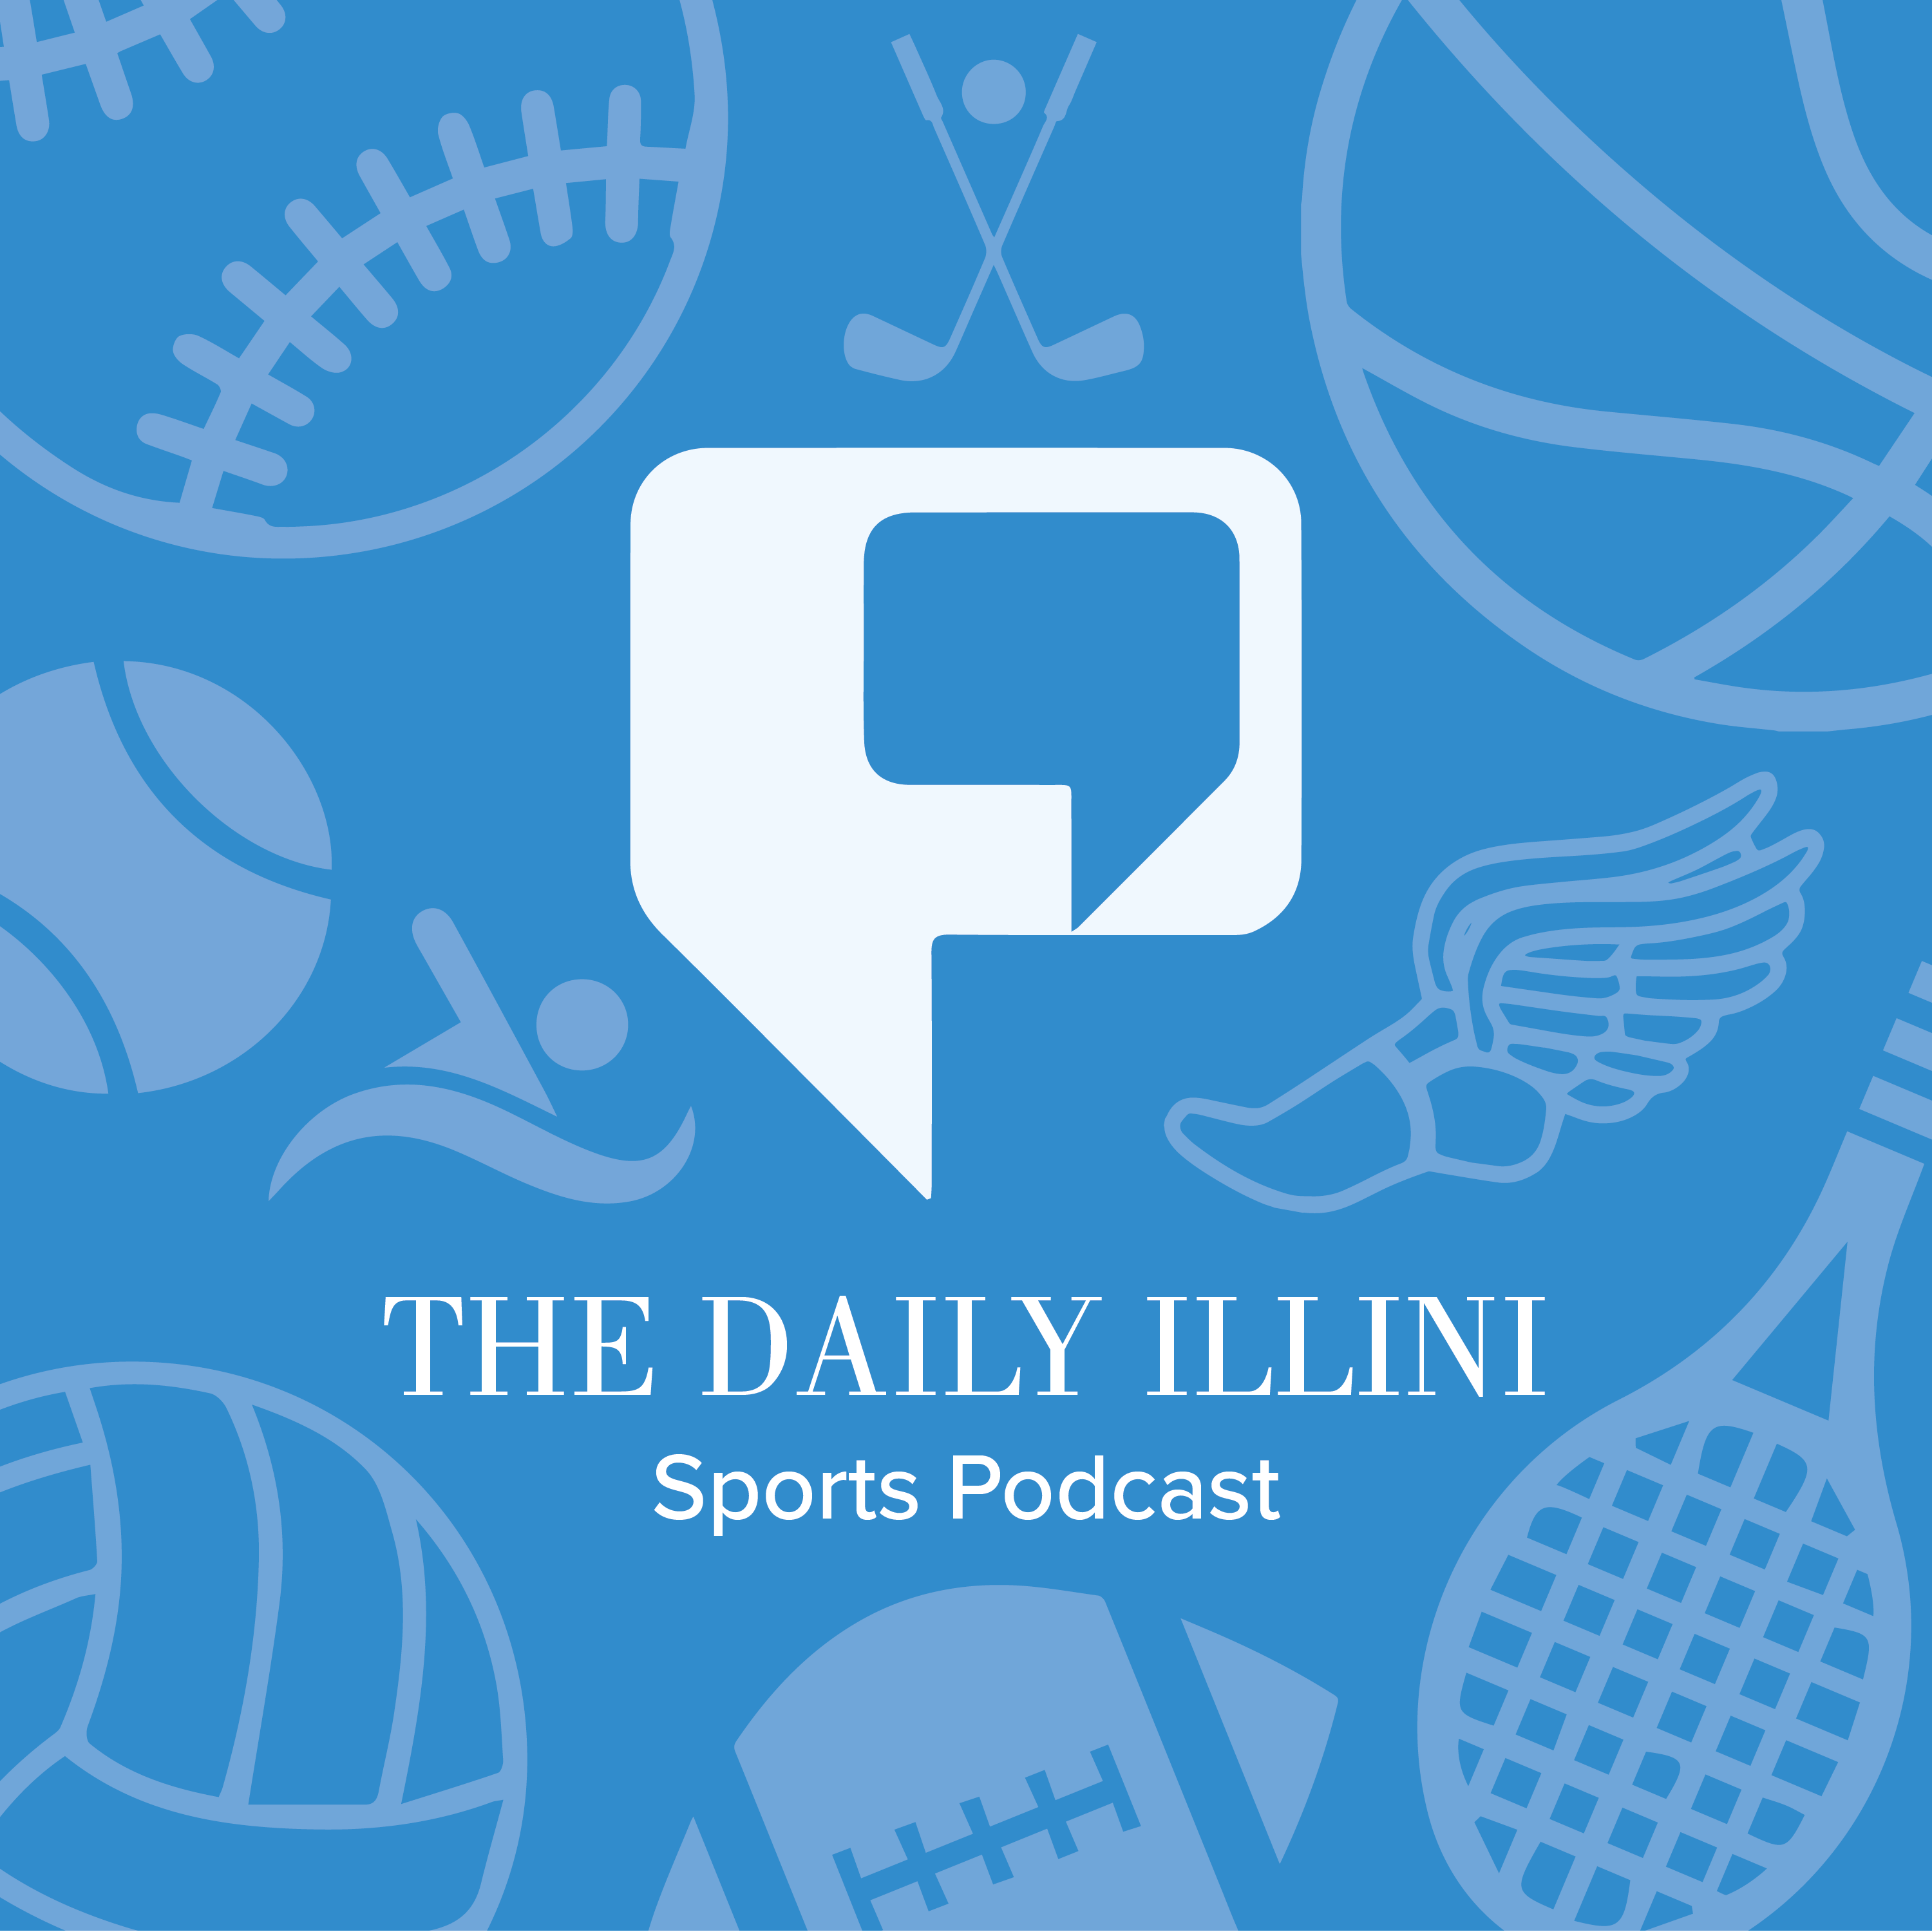 Artwork for podcast Daily Illini Sports Podcast